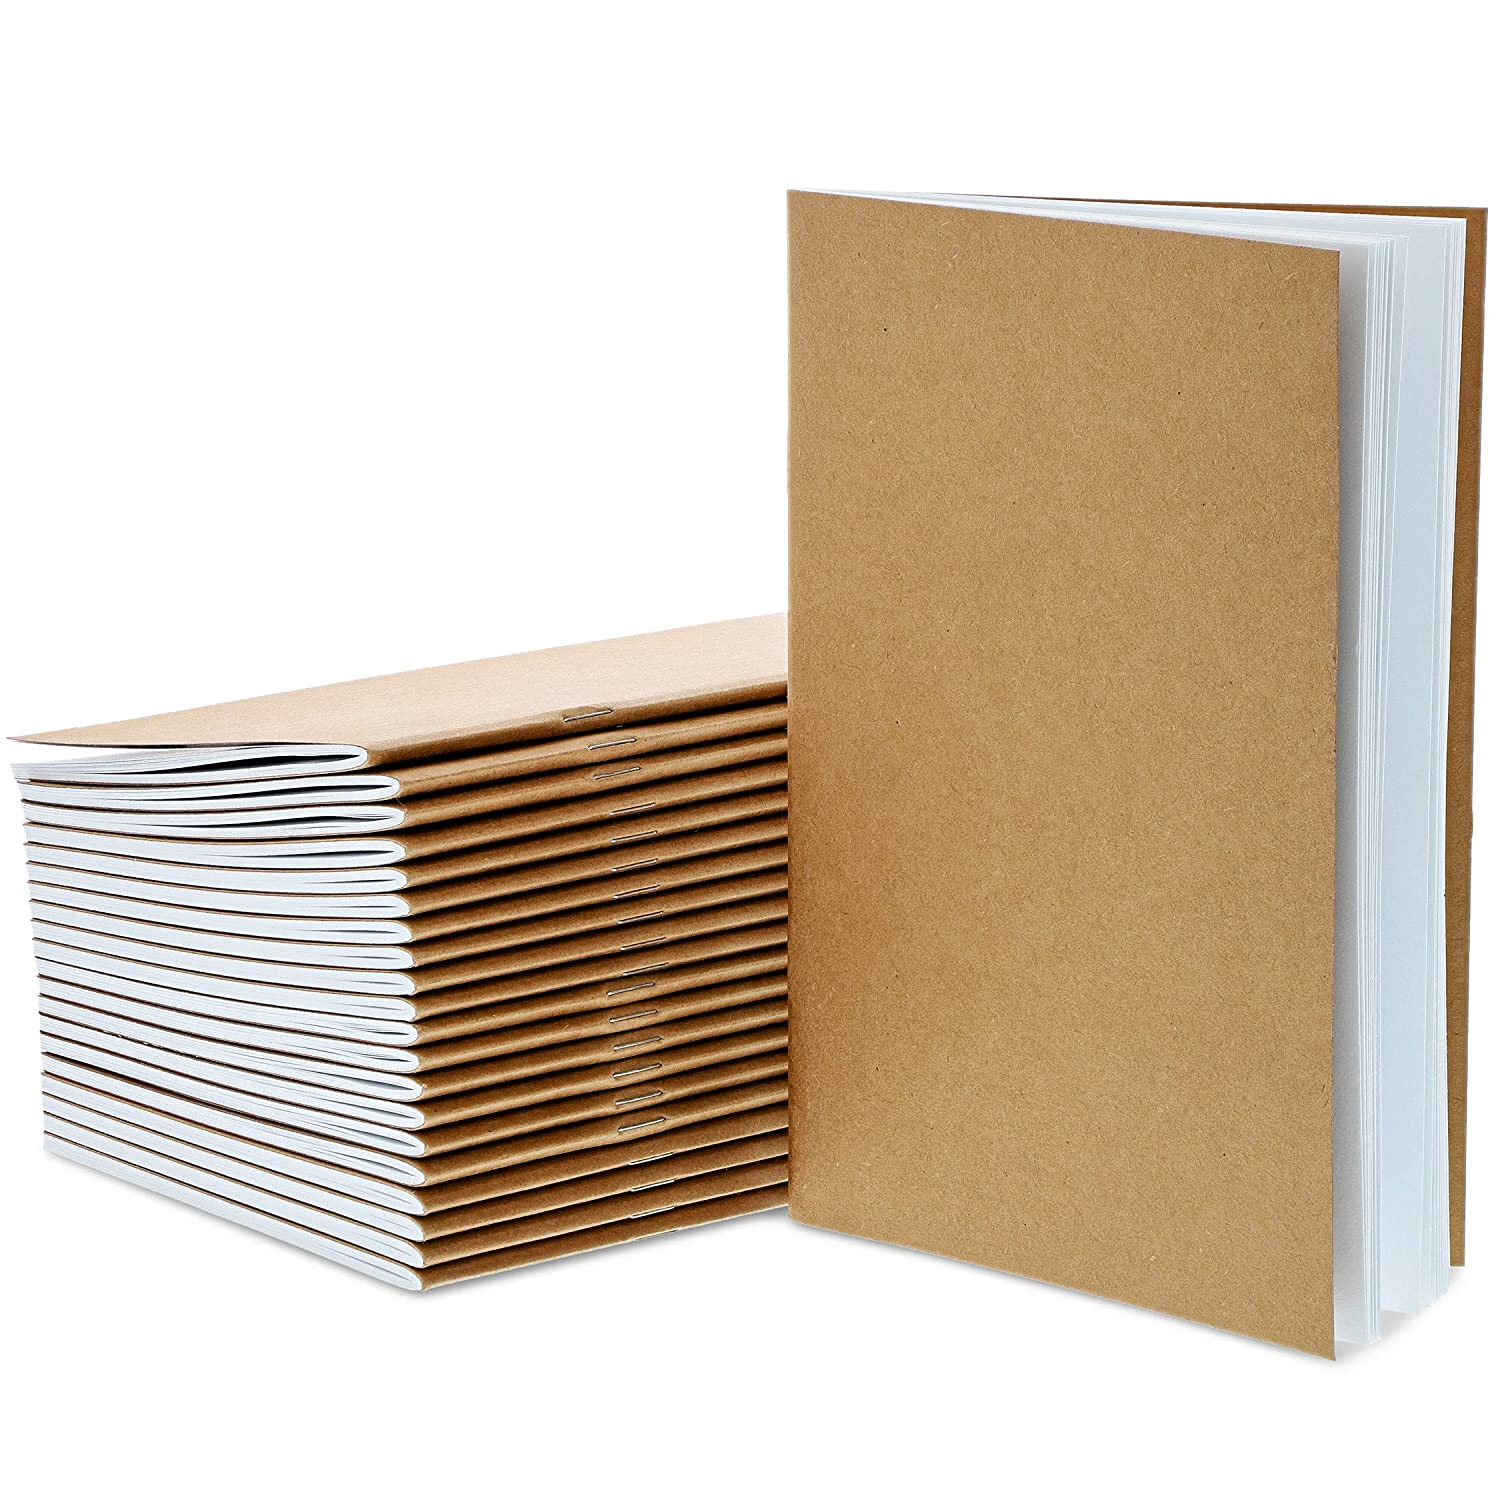 Brown Unruled Plain Travel Journals for Students Class Projects 5.5 x 8.5 Inches 24-Pack Unlined Blank Books Childrens Writing Books Half Letter Sized School 24 Sheets Each Kraft Notebook